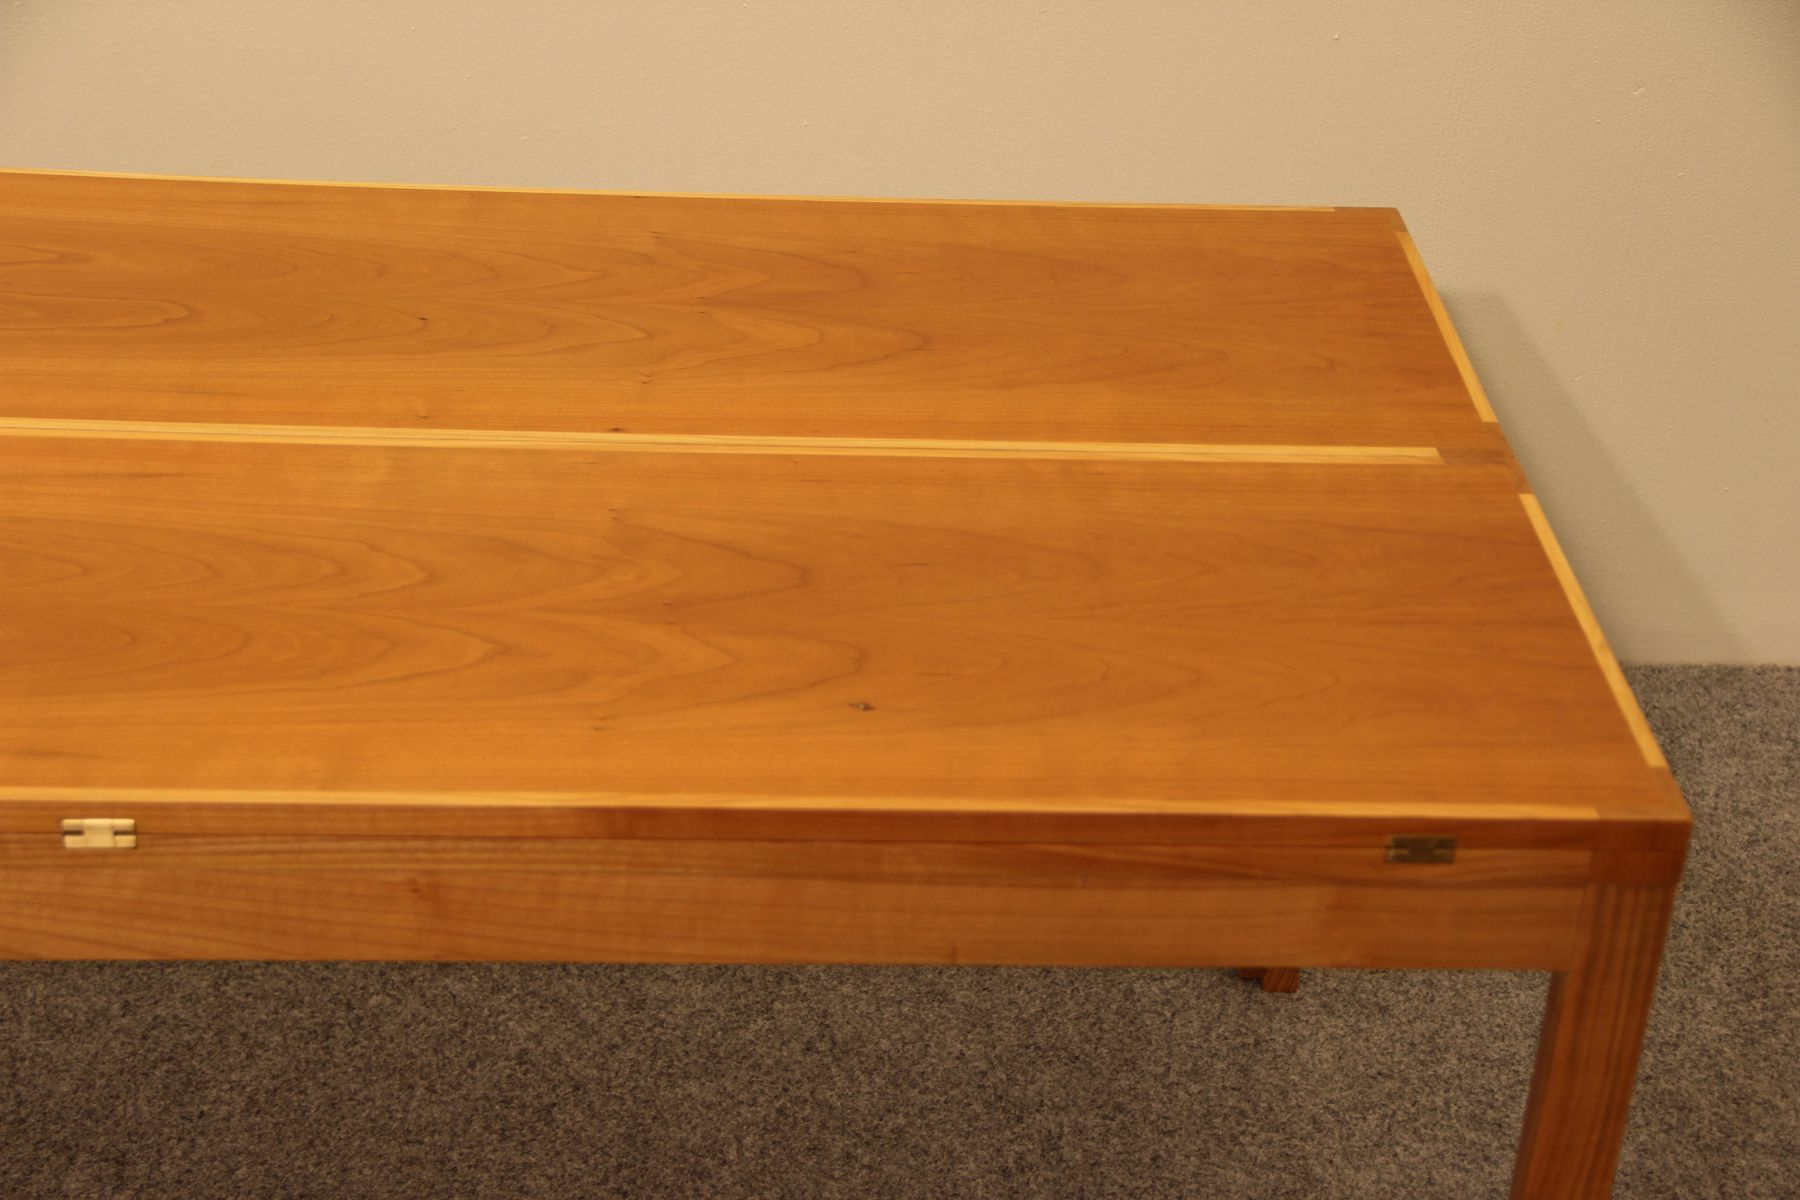 Vintage Extendible Cherry Coffee Table by Rud Thygesen & Johnny